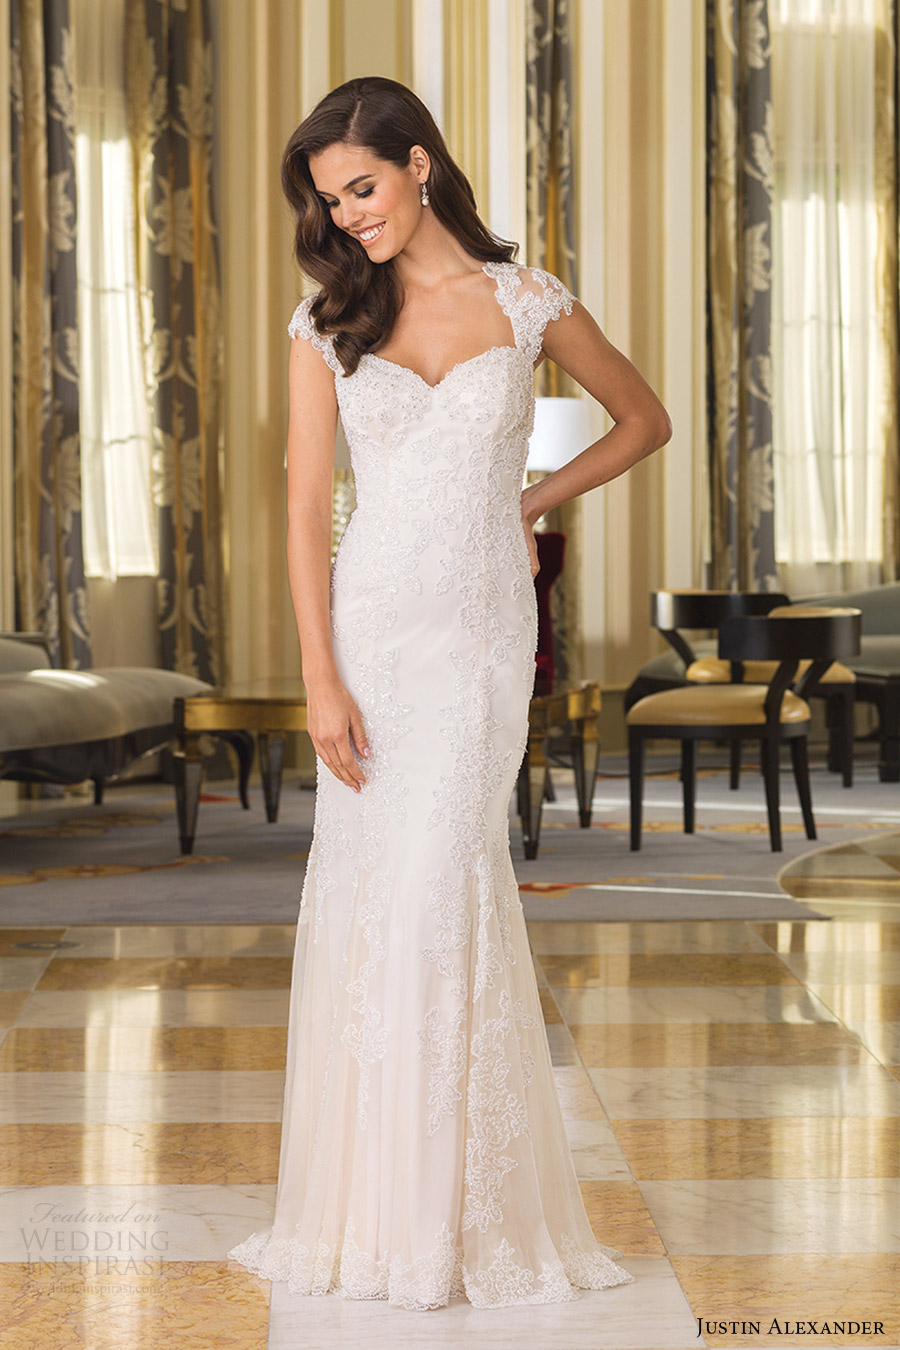 justin alexander bridal fall 2016 cap sleeves queen anne neckline sheath wedding dress (8860) mv